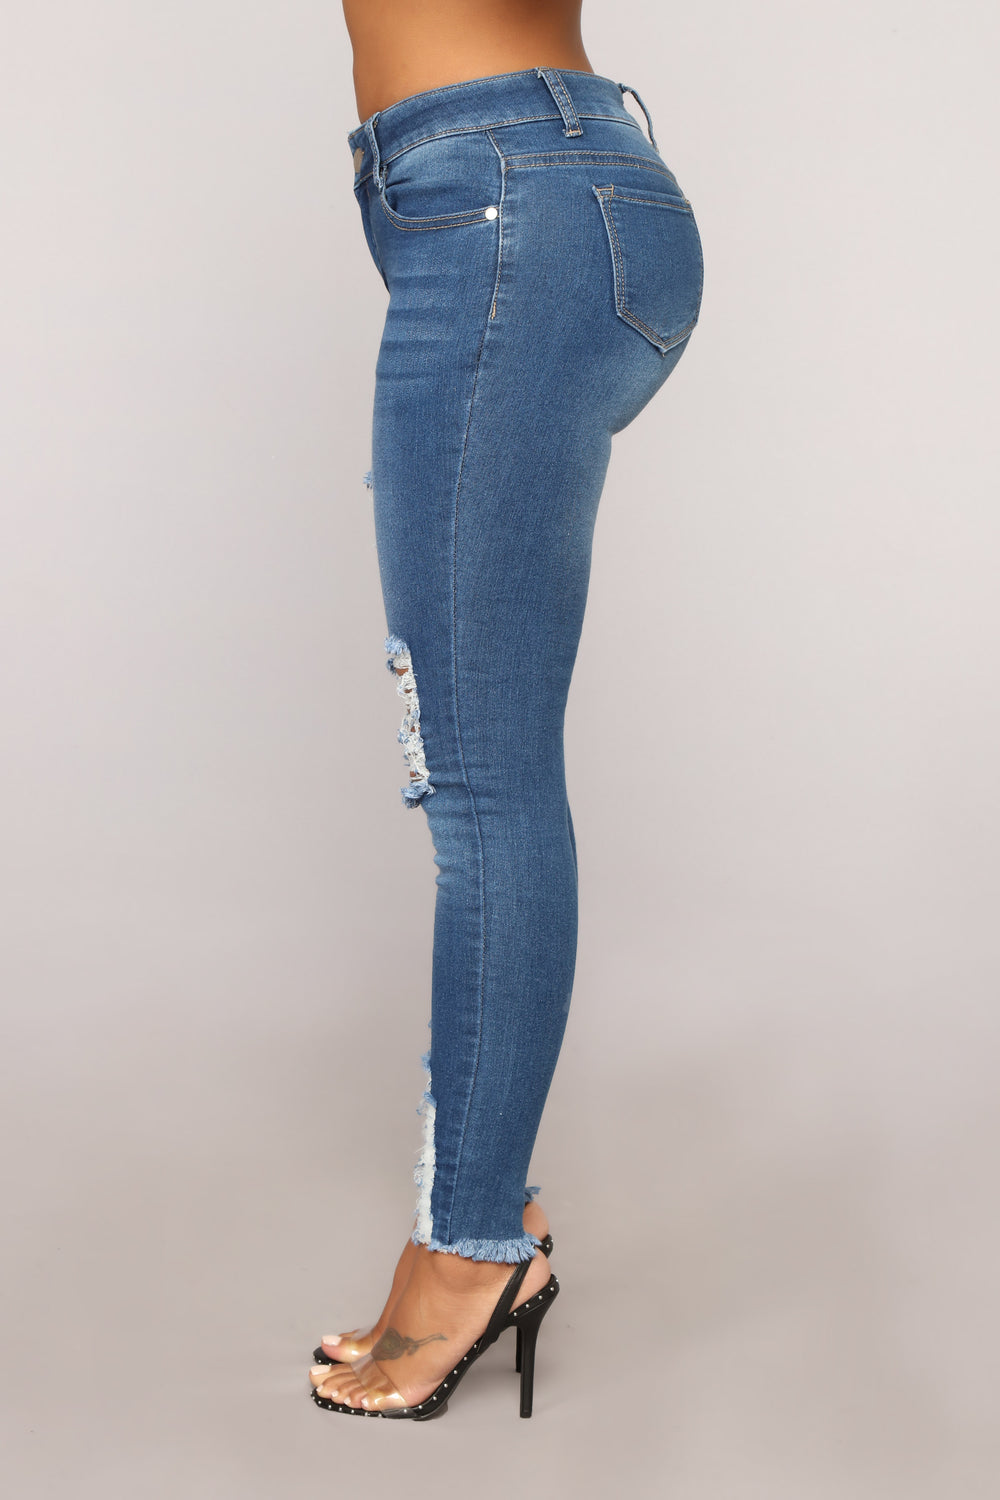 Gone Bad Distressed Jeans - Medium Blue Wash